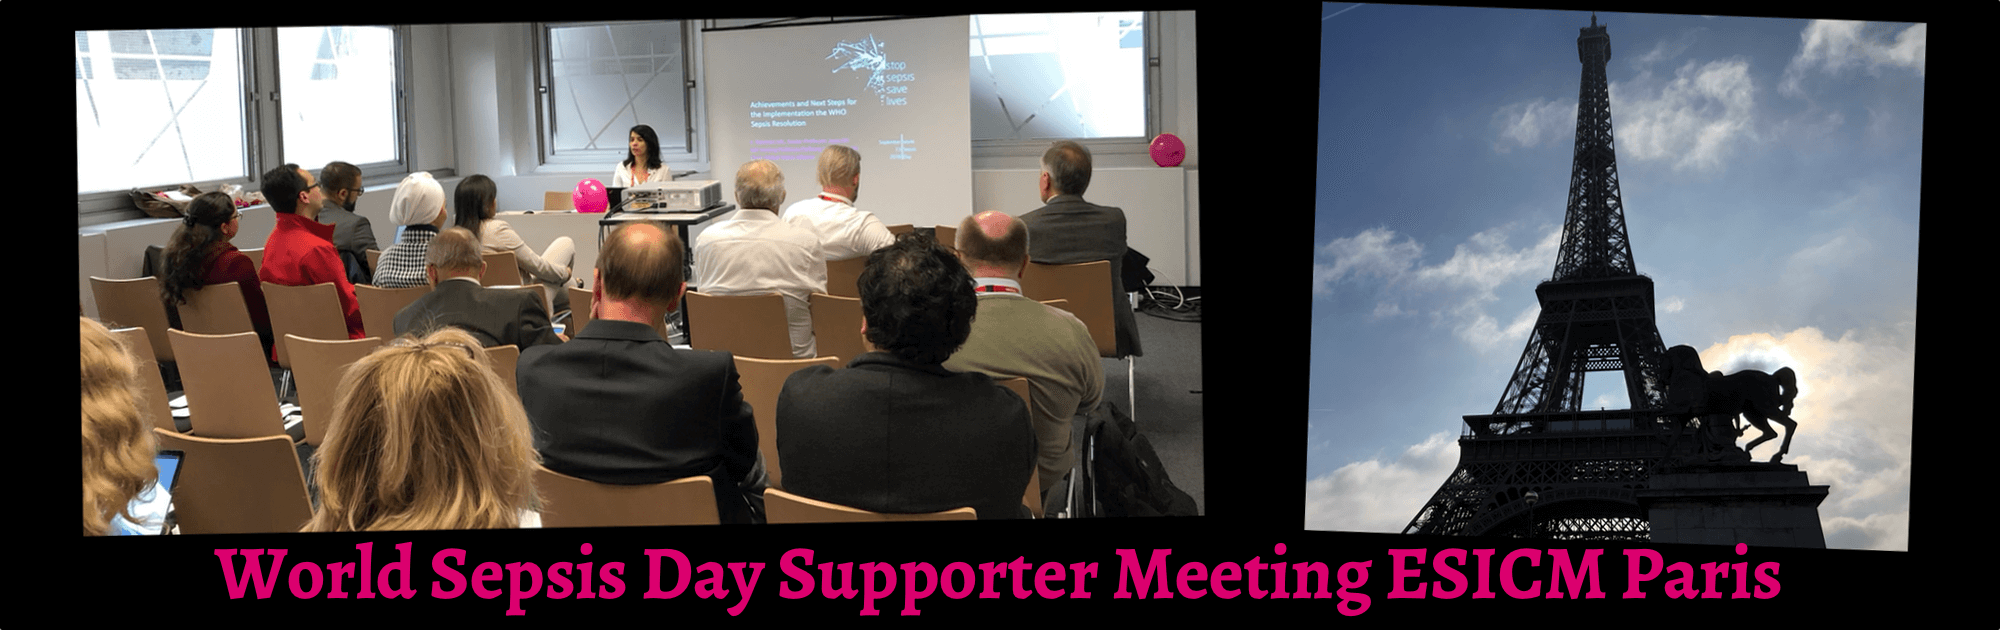 WSD Supporter Meeting Paris (1).png